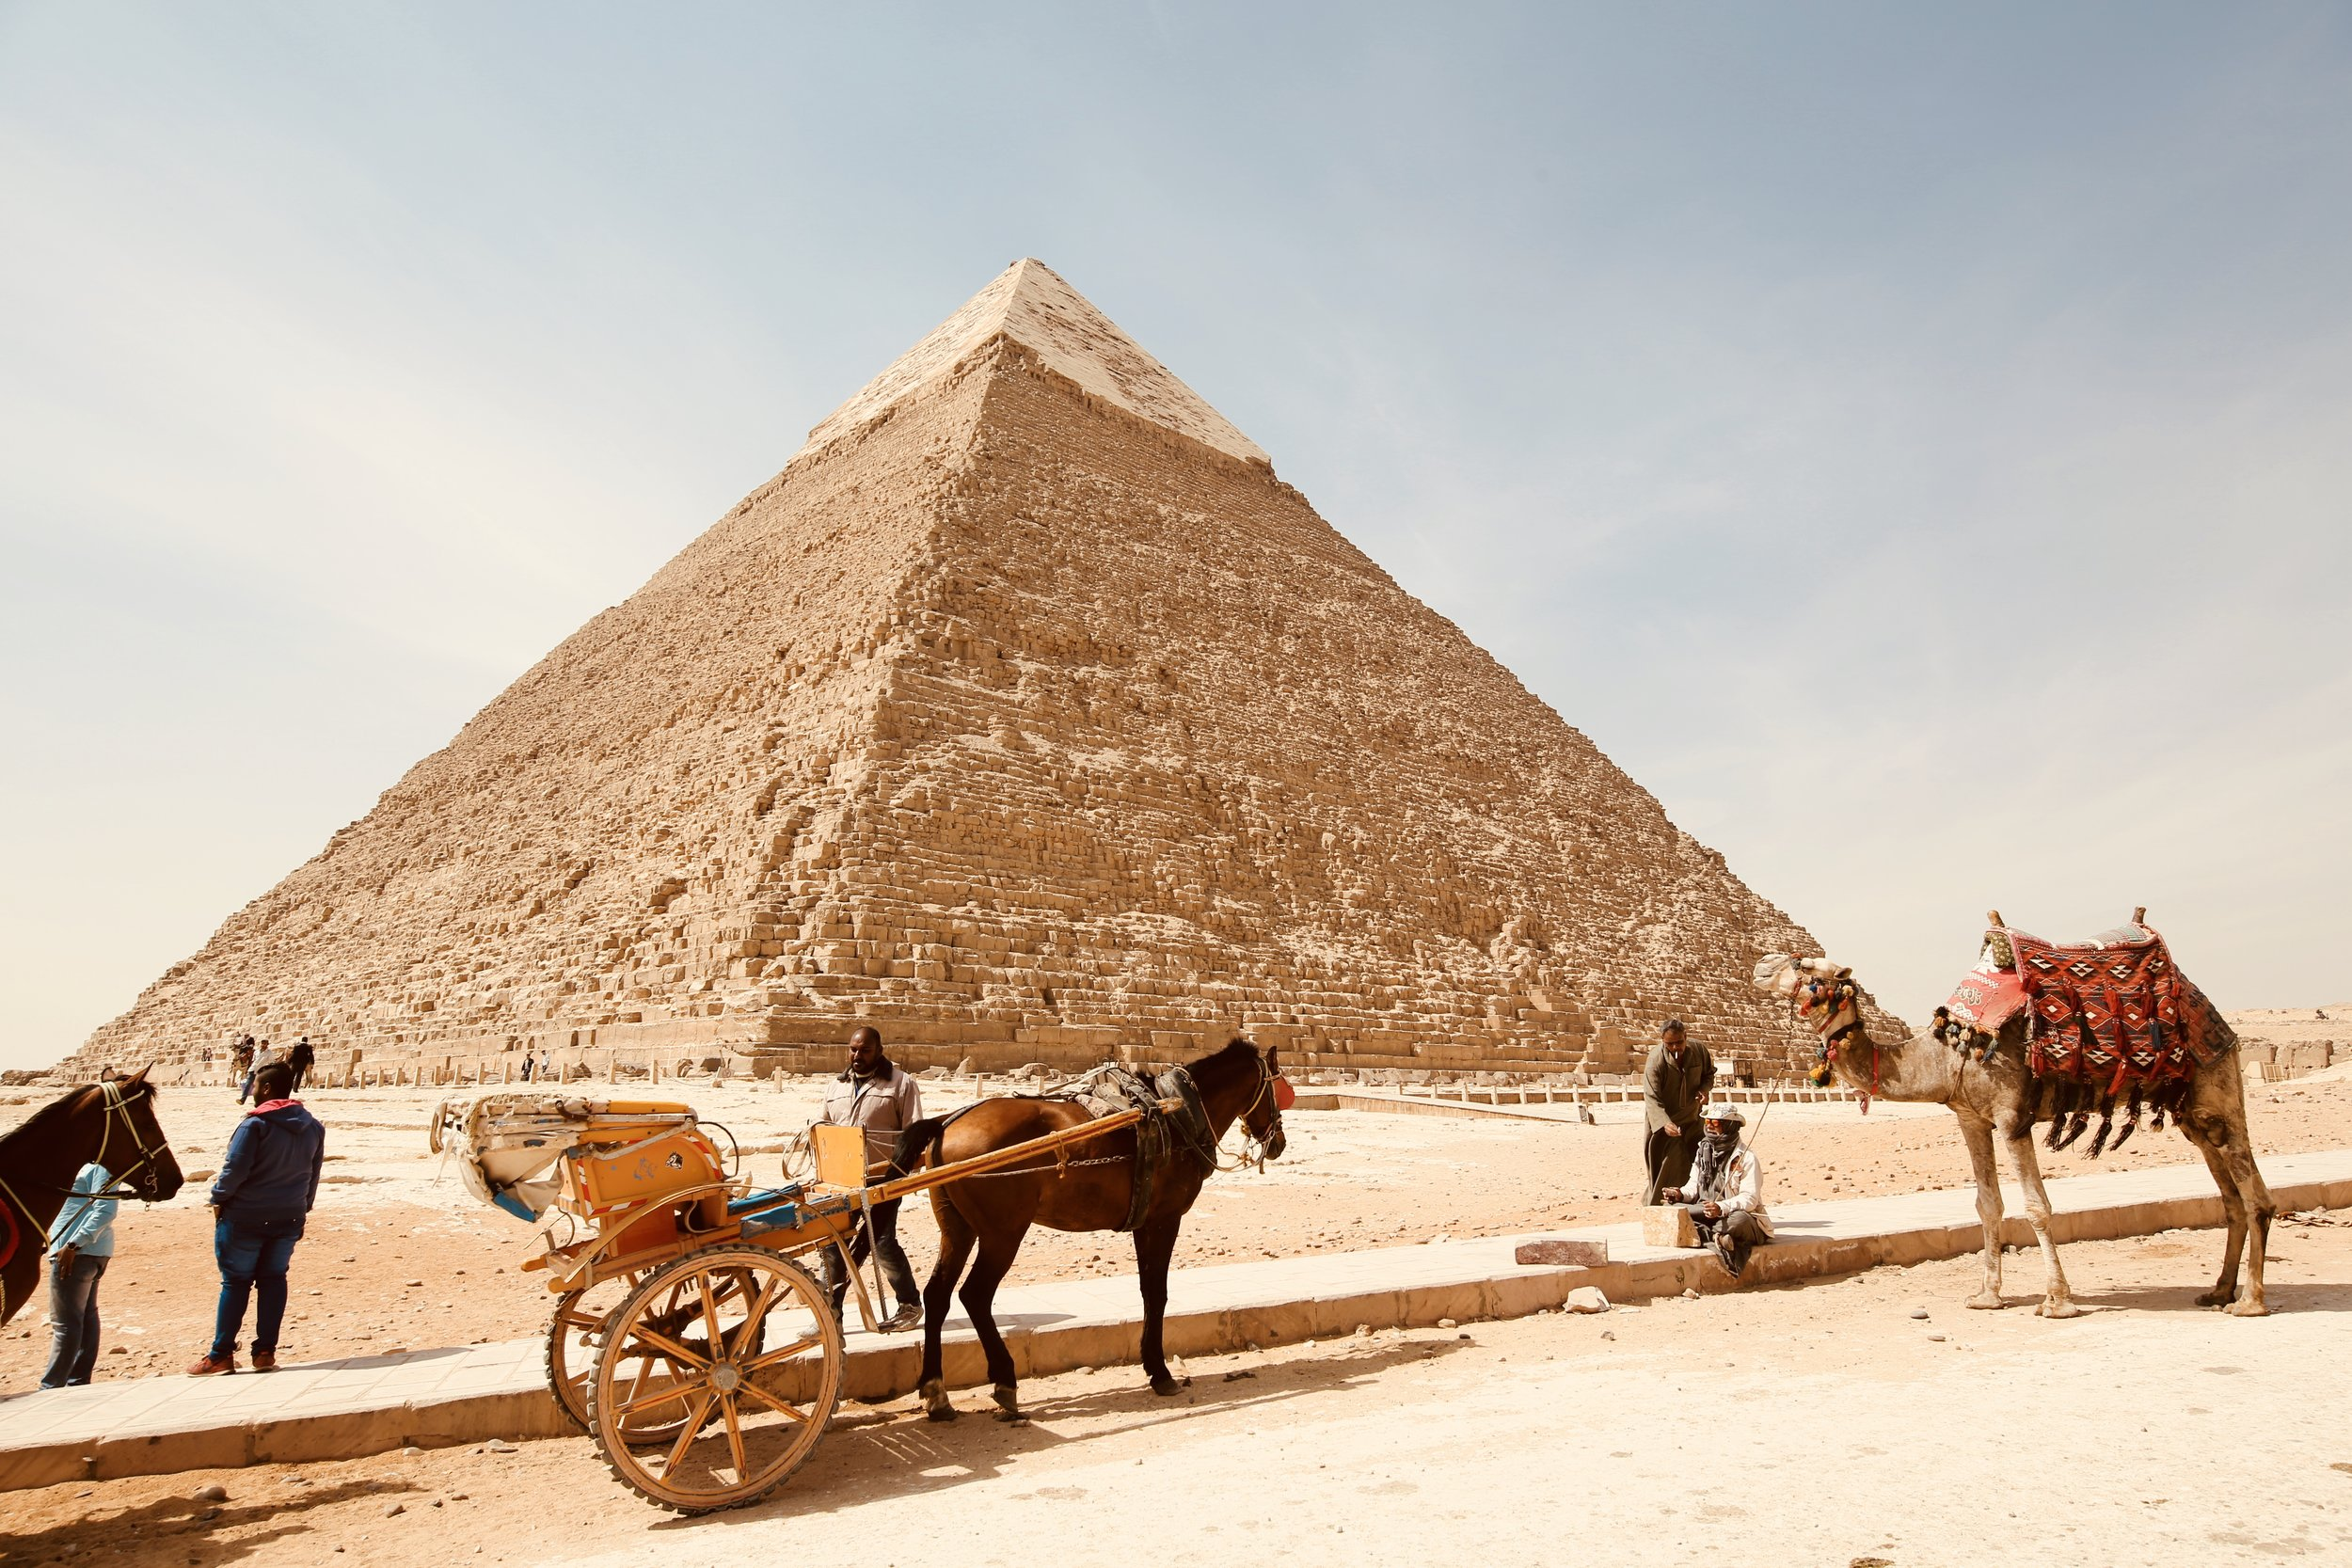 Classical Egypt and Jordan - From the Valley of the Kings to the awe-inspiring ruins of Petra, this adventure through Egypt and Jordan reveals so much more than the sphinxes and tombs of your childhood dreams.15 nights from $6,310*(NZD)Travel Period: Selected travel dates and subject to tour timings